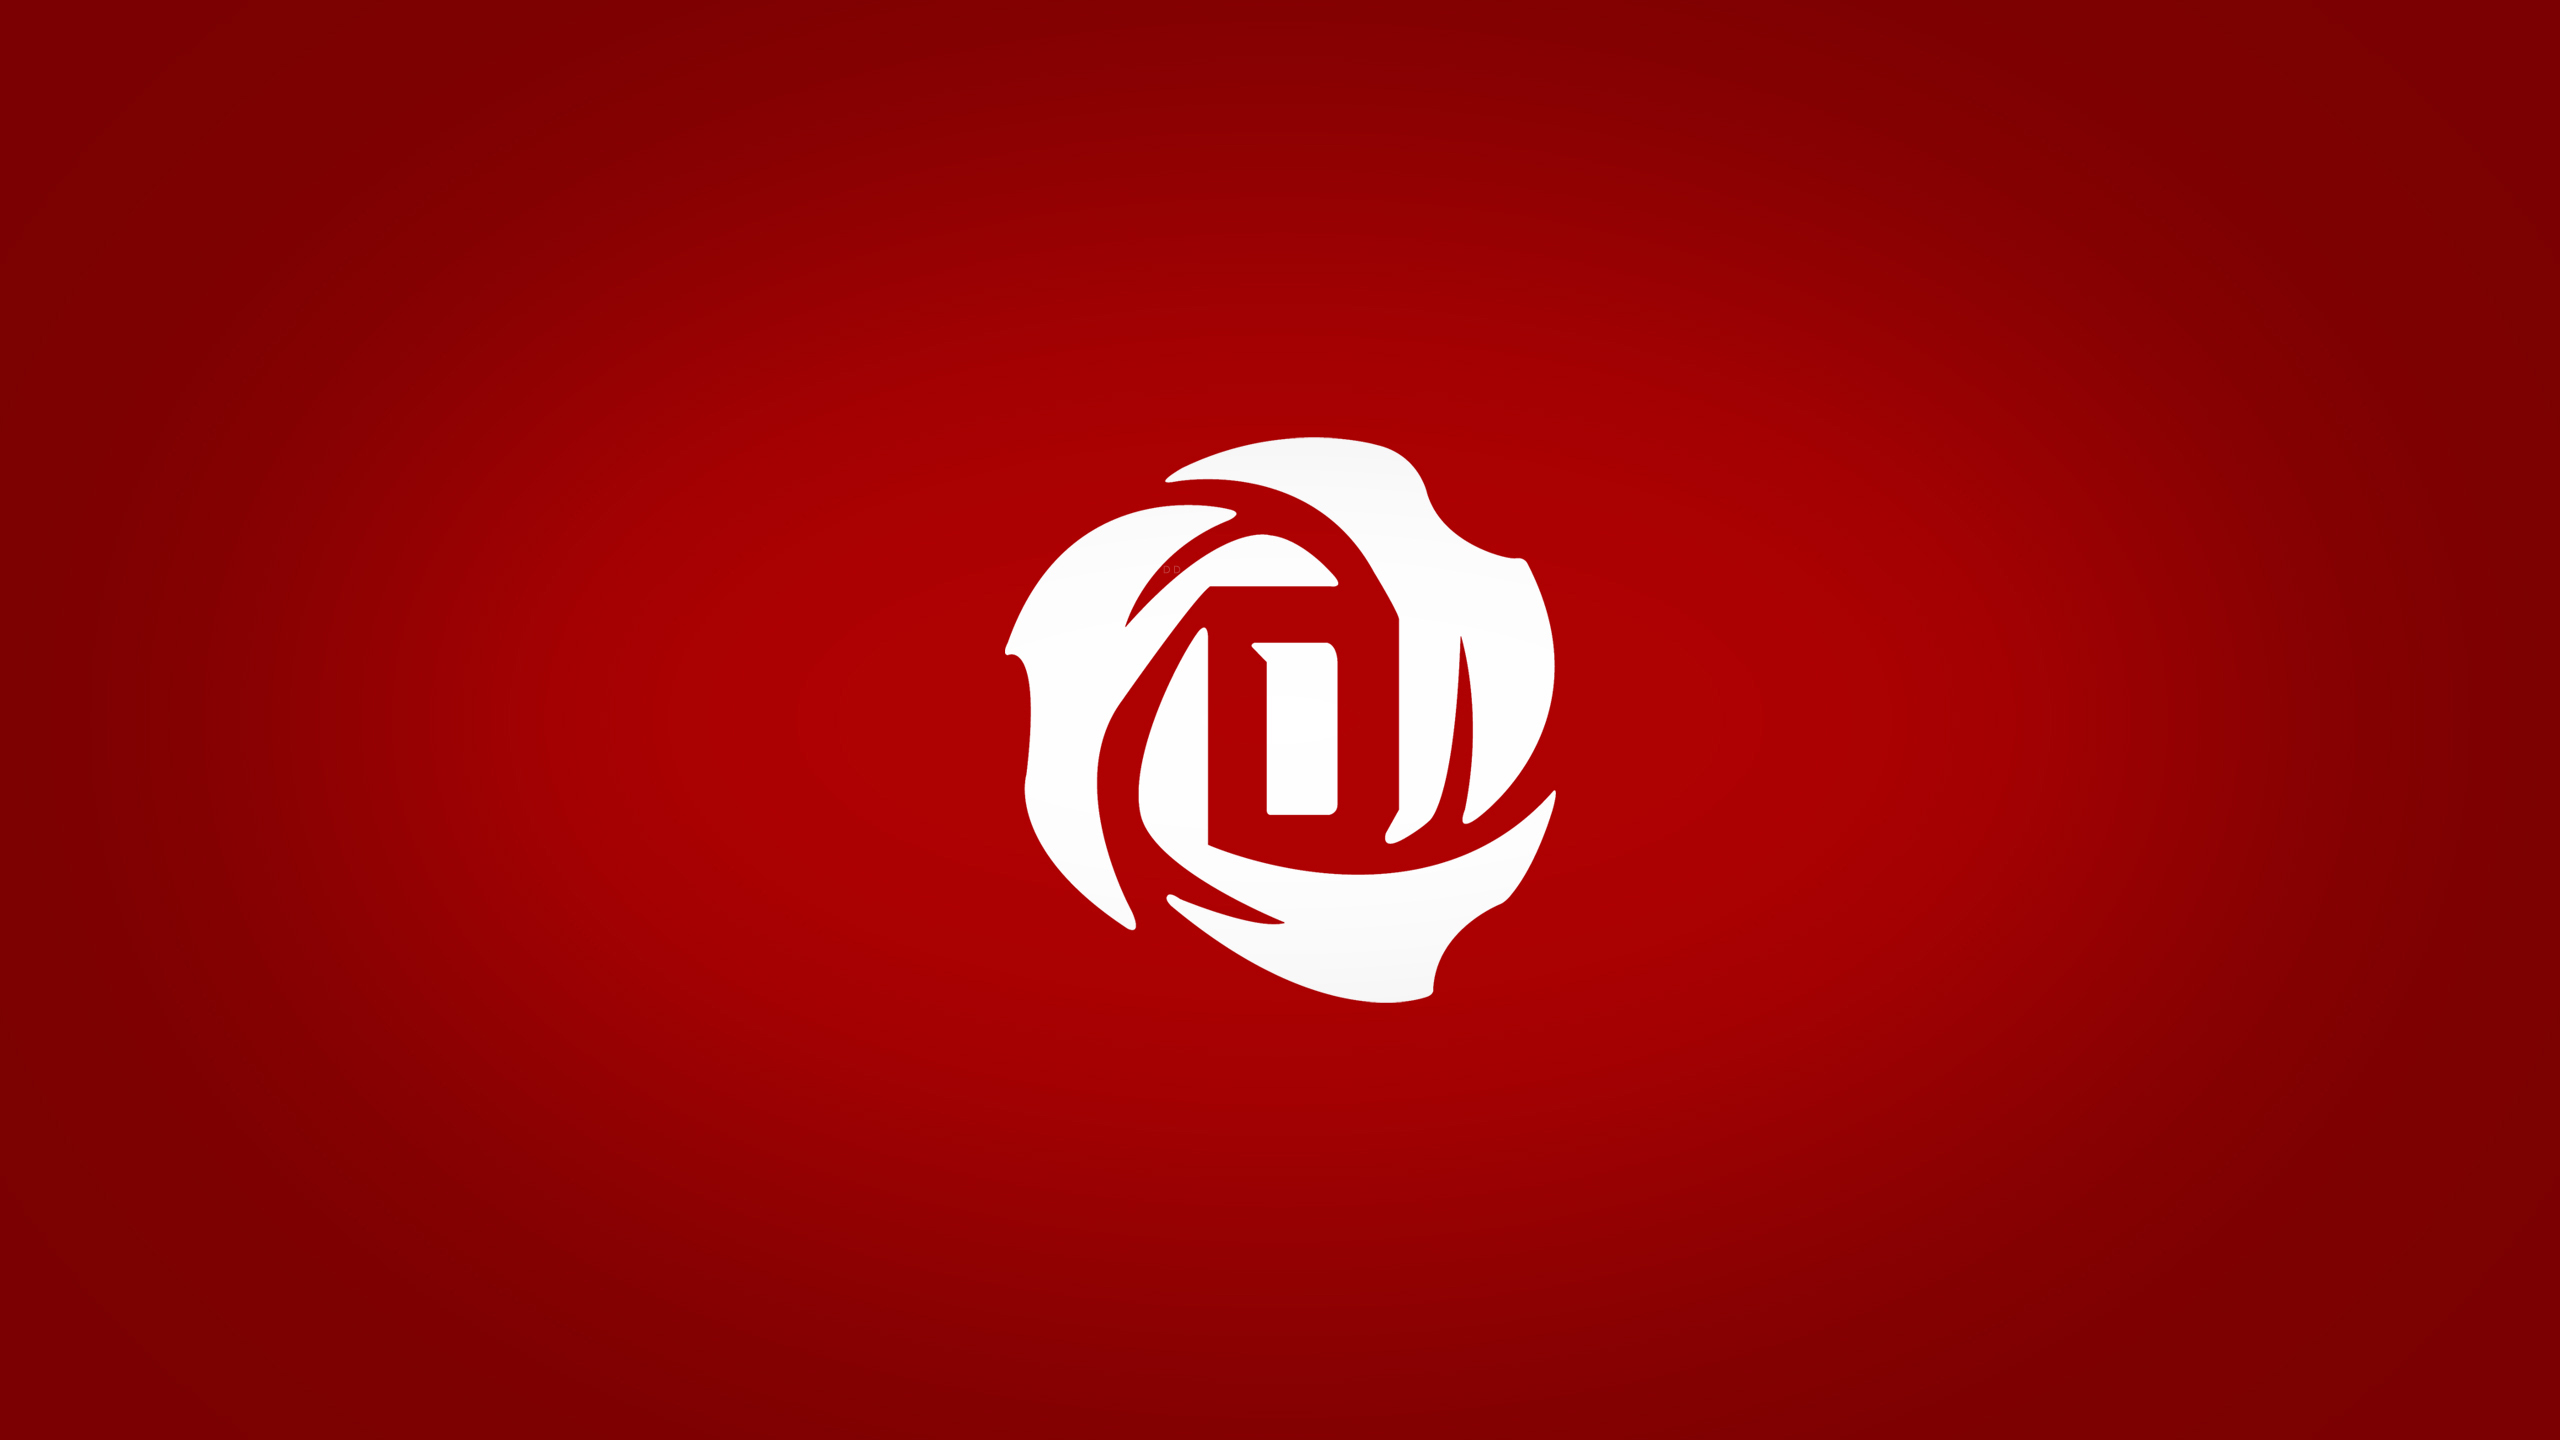 77+] Derrick Rose Logo Wallpaper on WallpaperSafari.